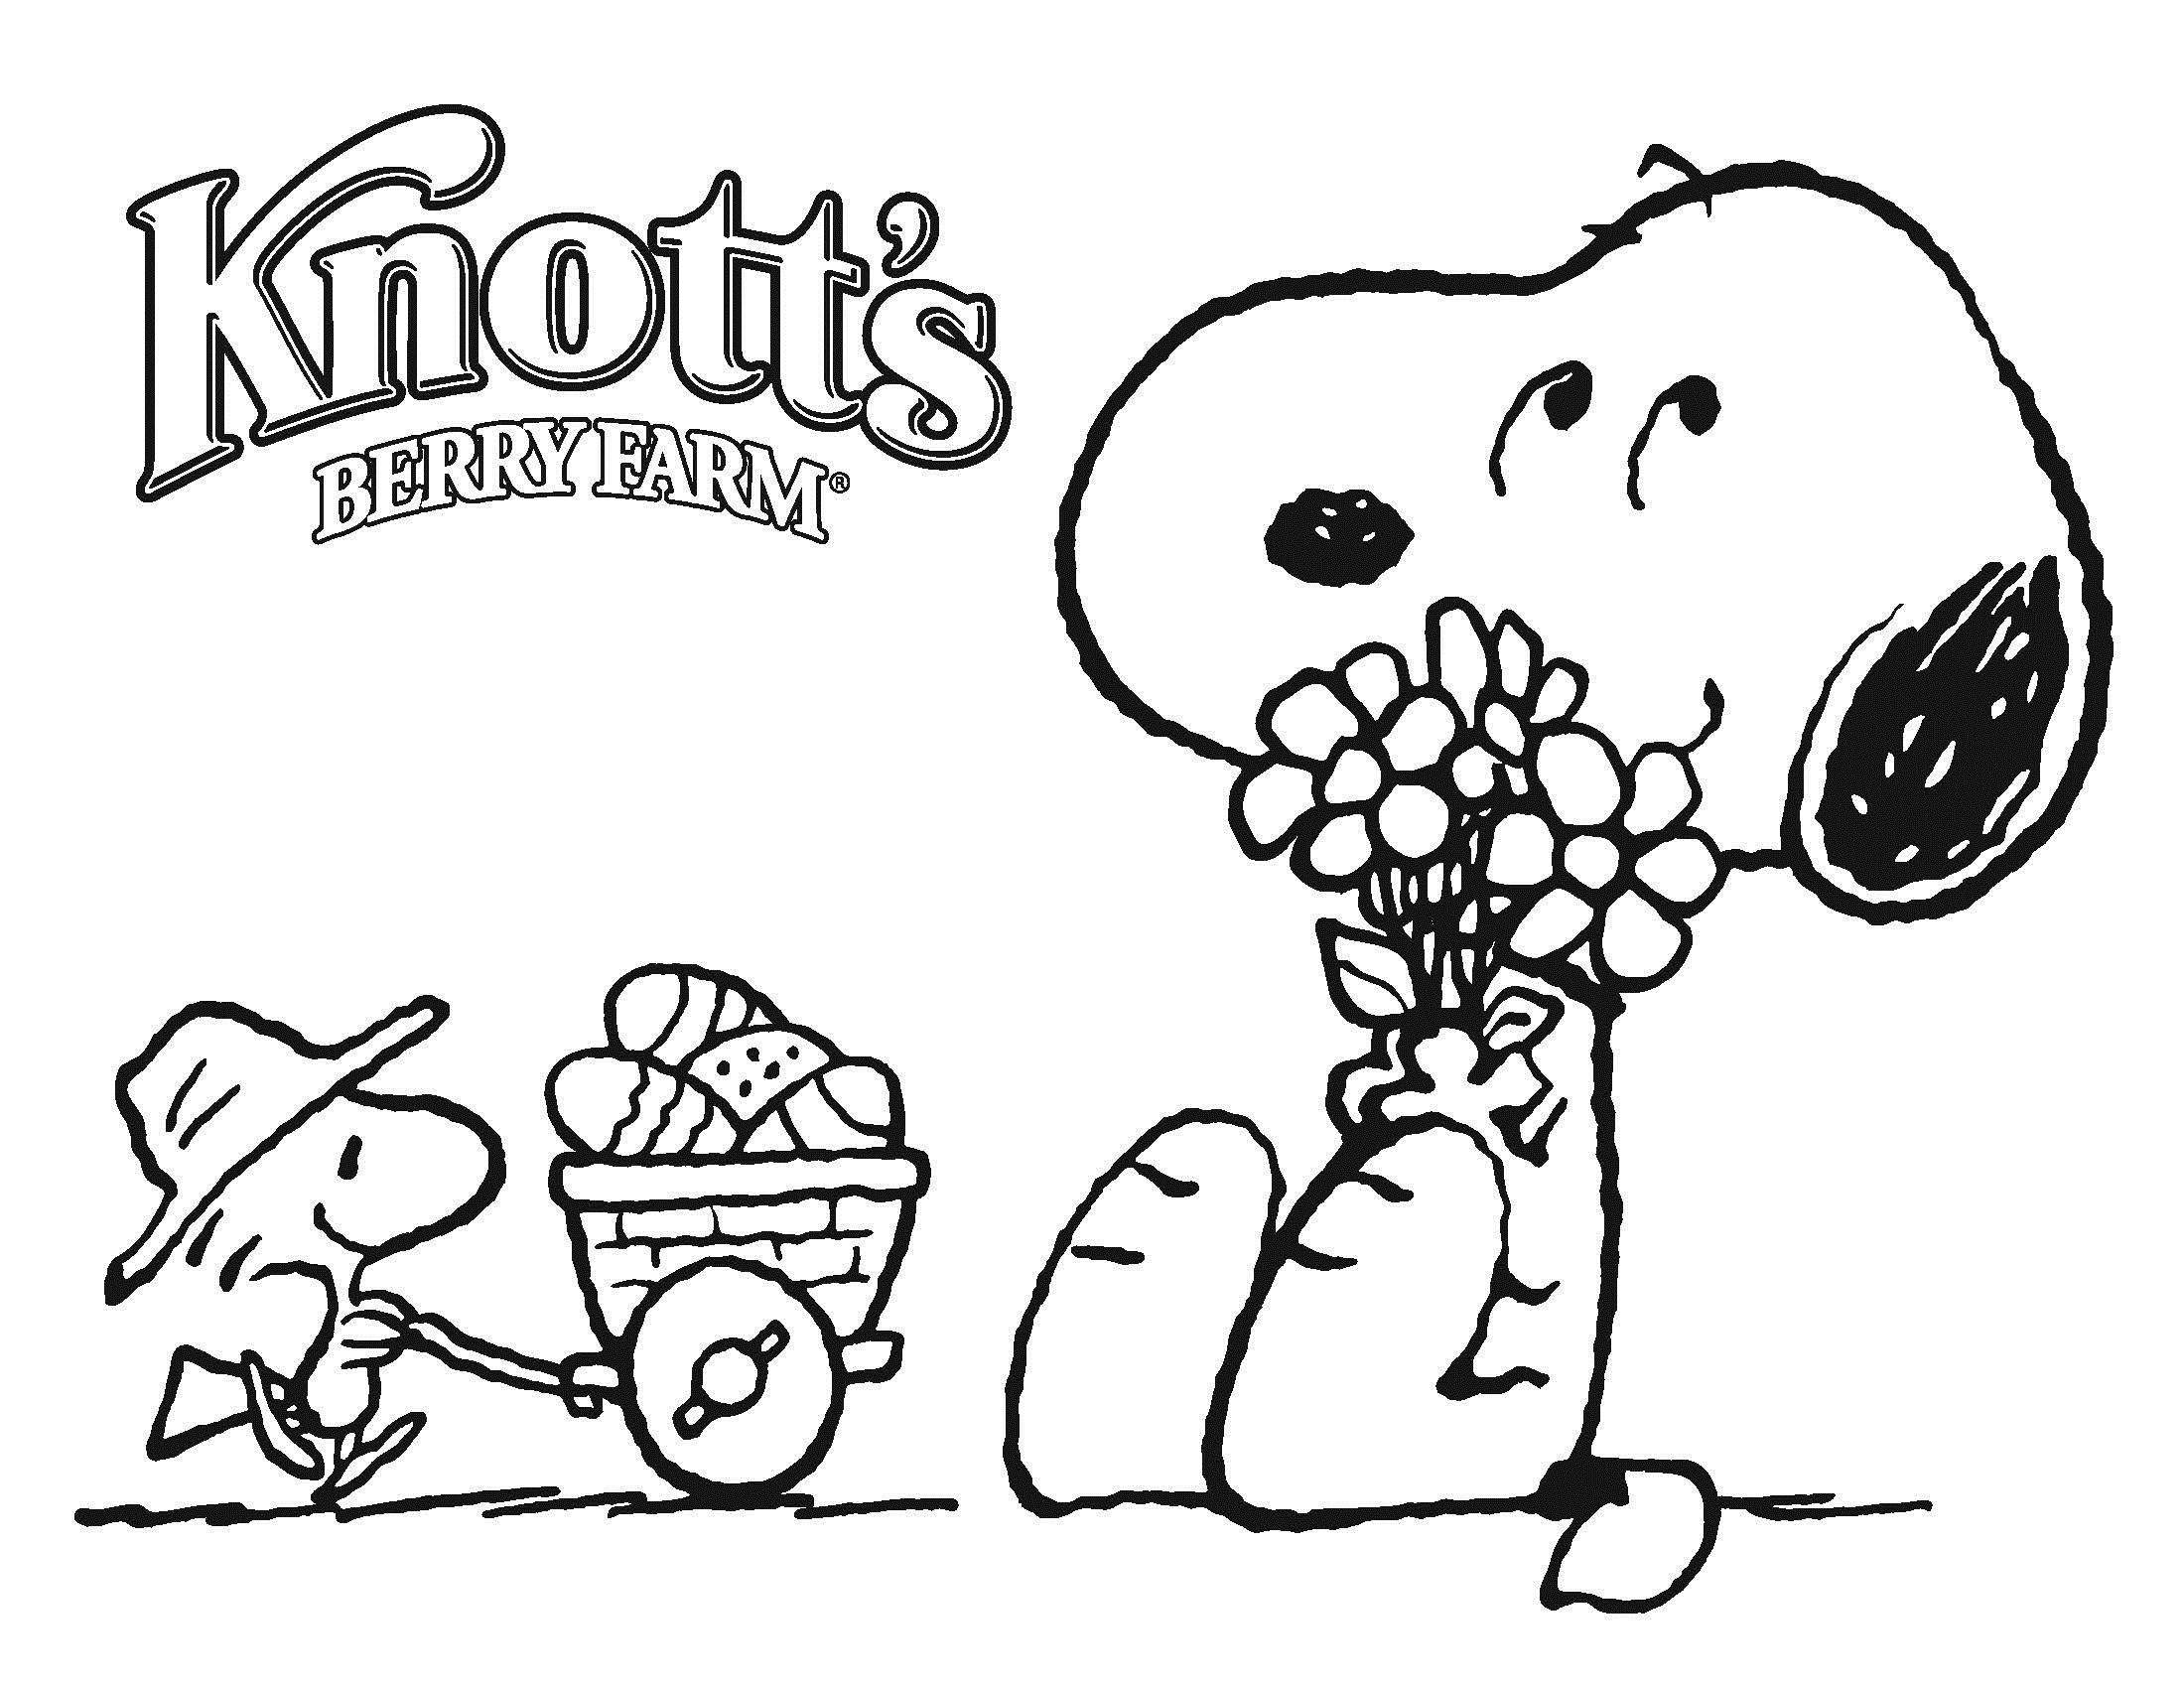 peanuts characters coloring pages free printable snoopy coloring pages for kids characters peanuts pages coloring